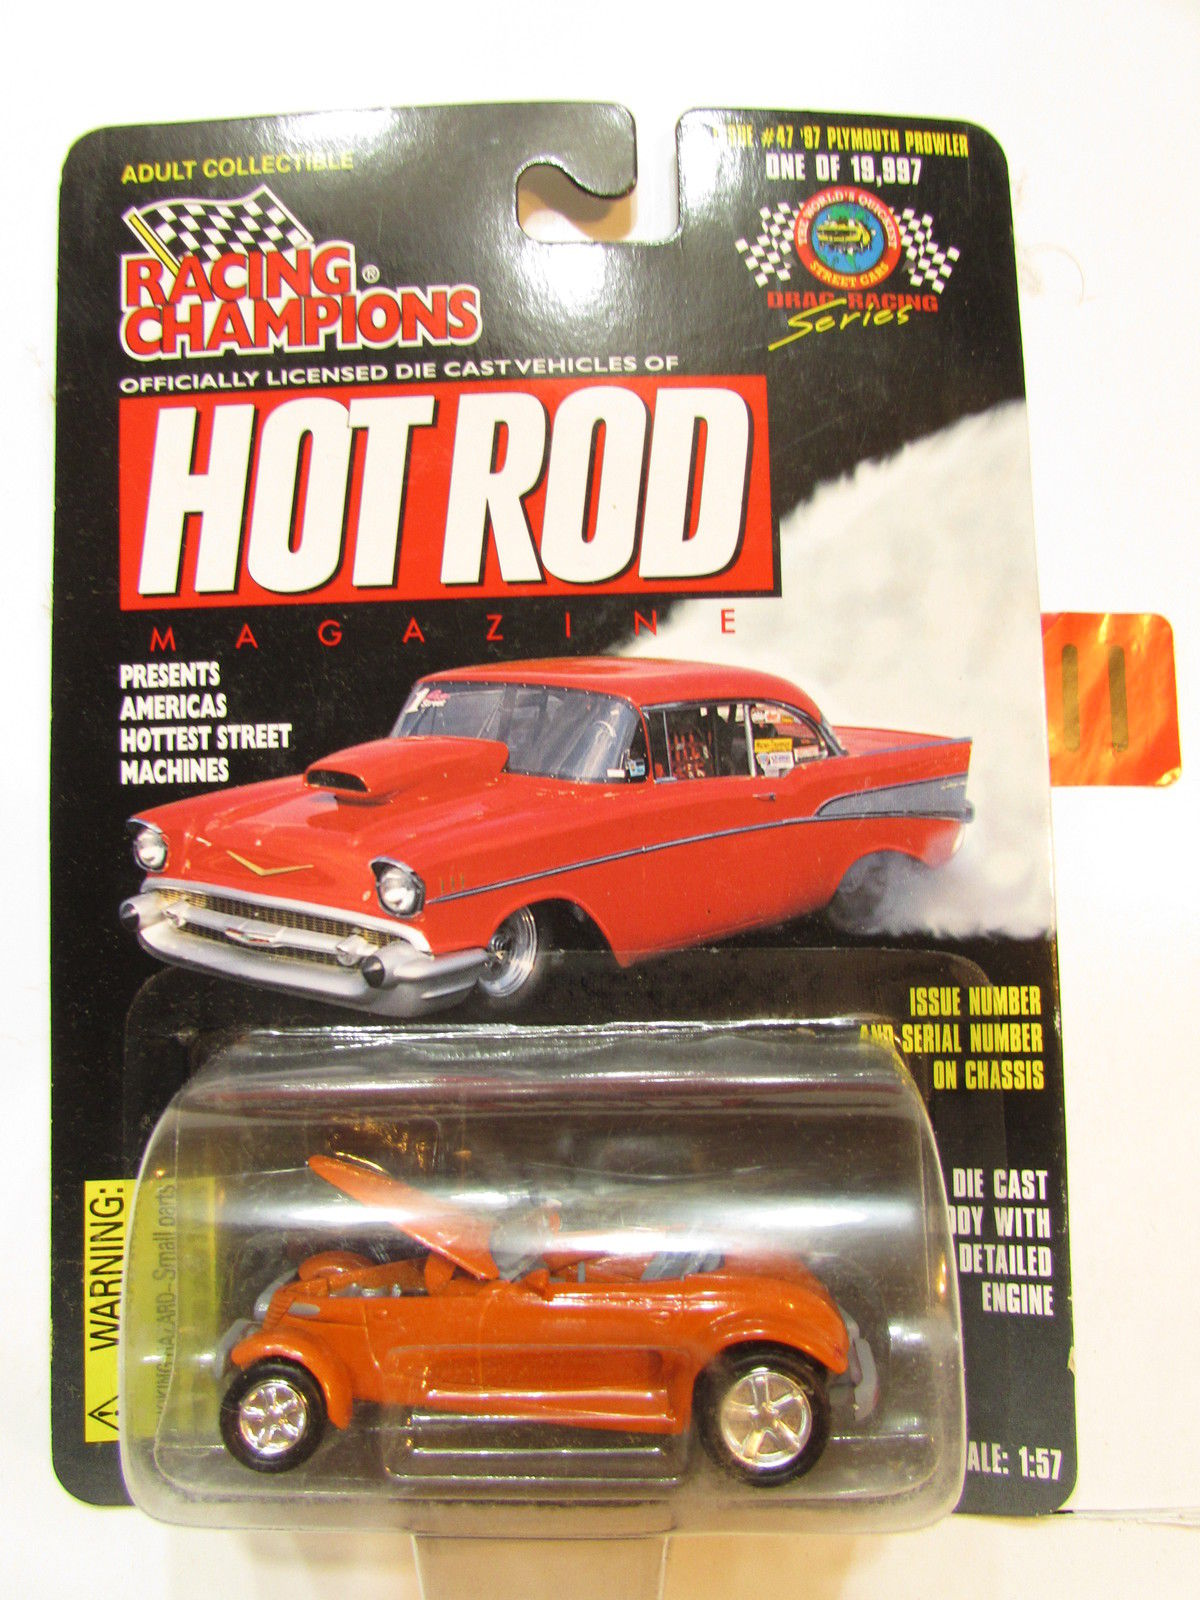 RACING CHAMPIONS HOT ROD ISSUE #47 - '97 PLYMOUTH PROWLER 1:57 SCALE